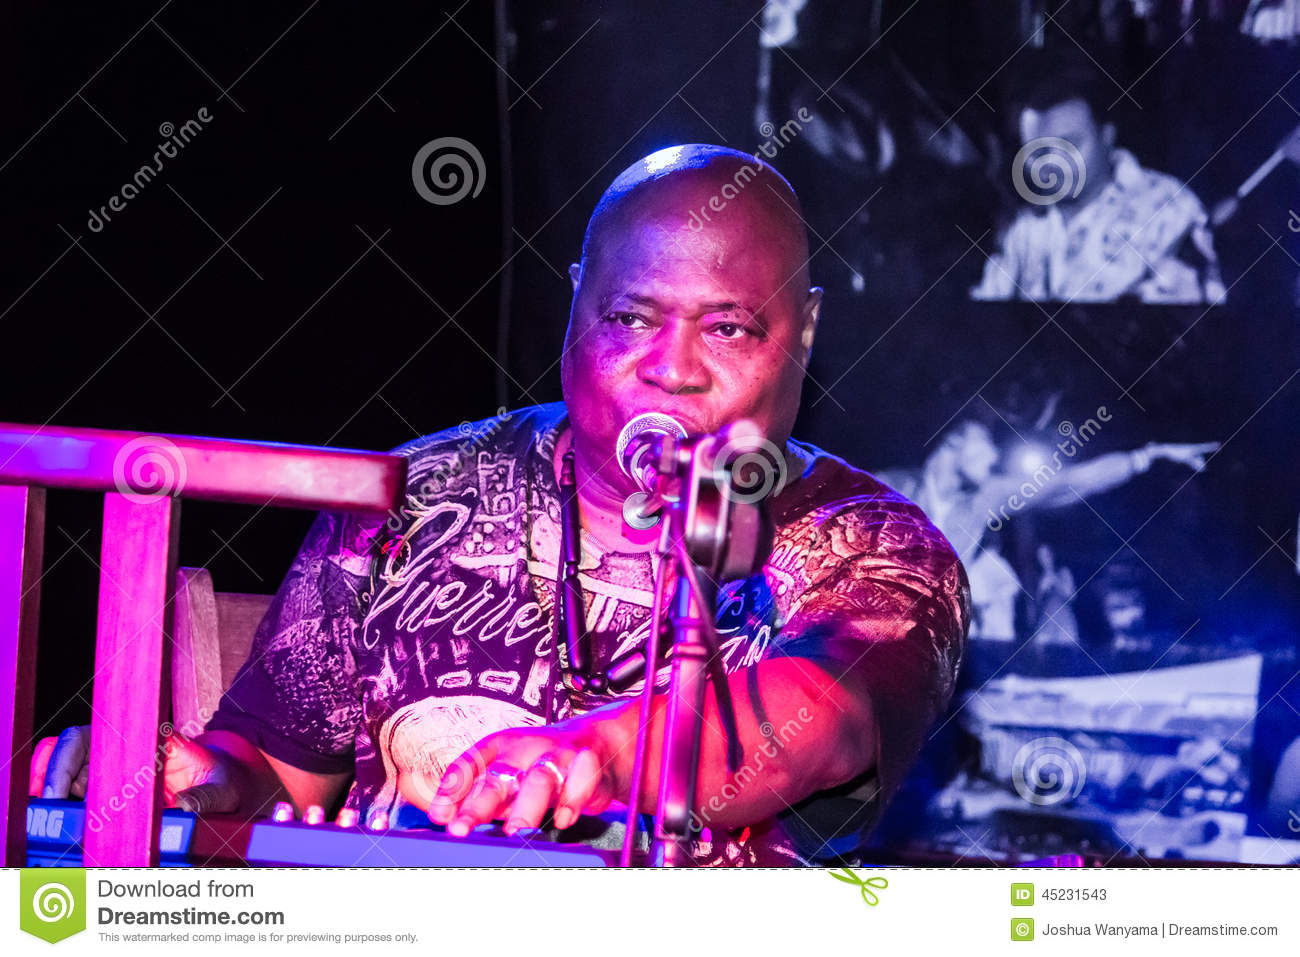 Cheick Tidiane Seck Performs Editorial Stock Photo - Image of rock